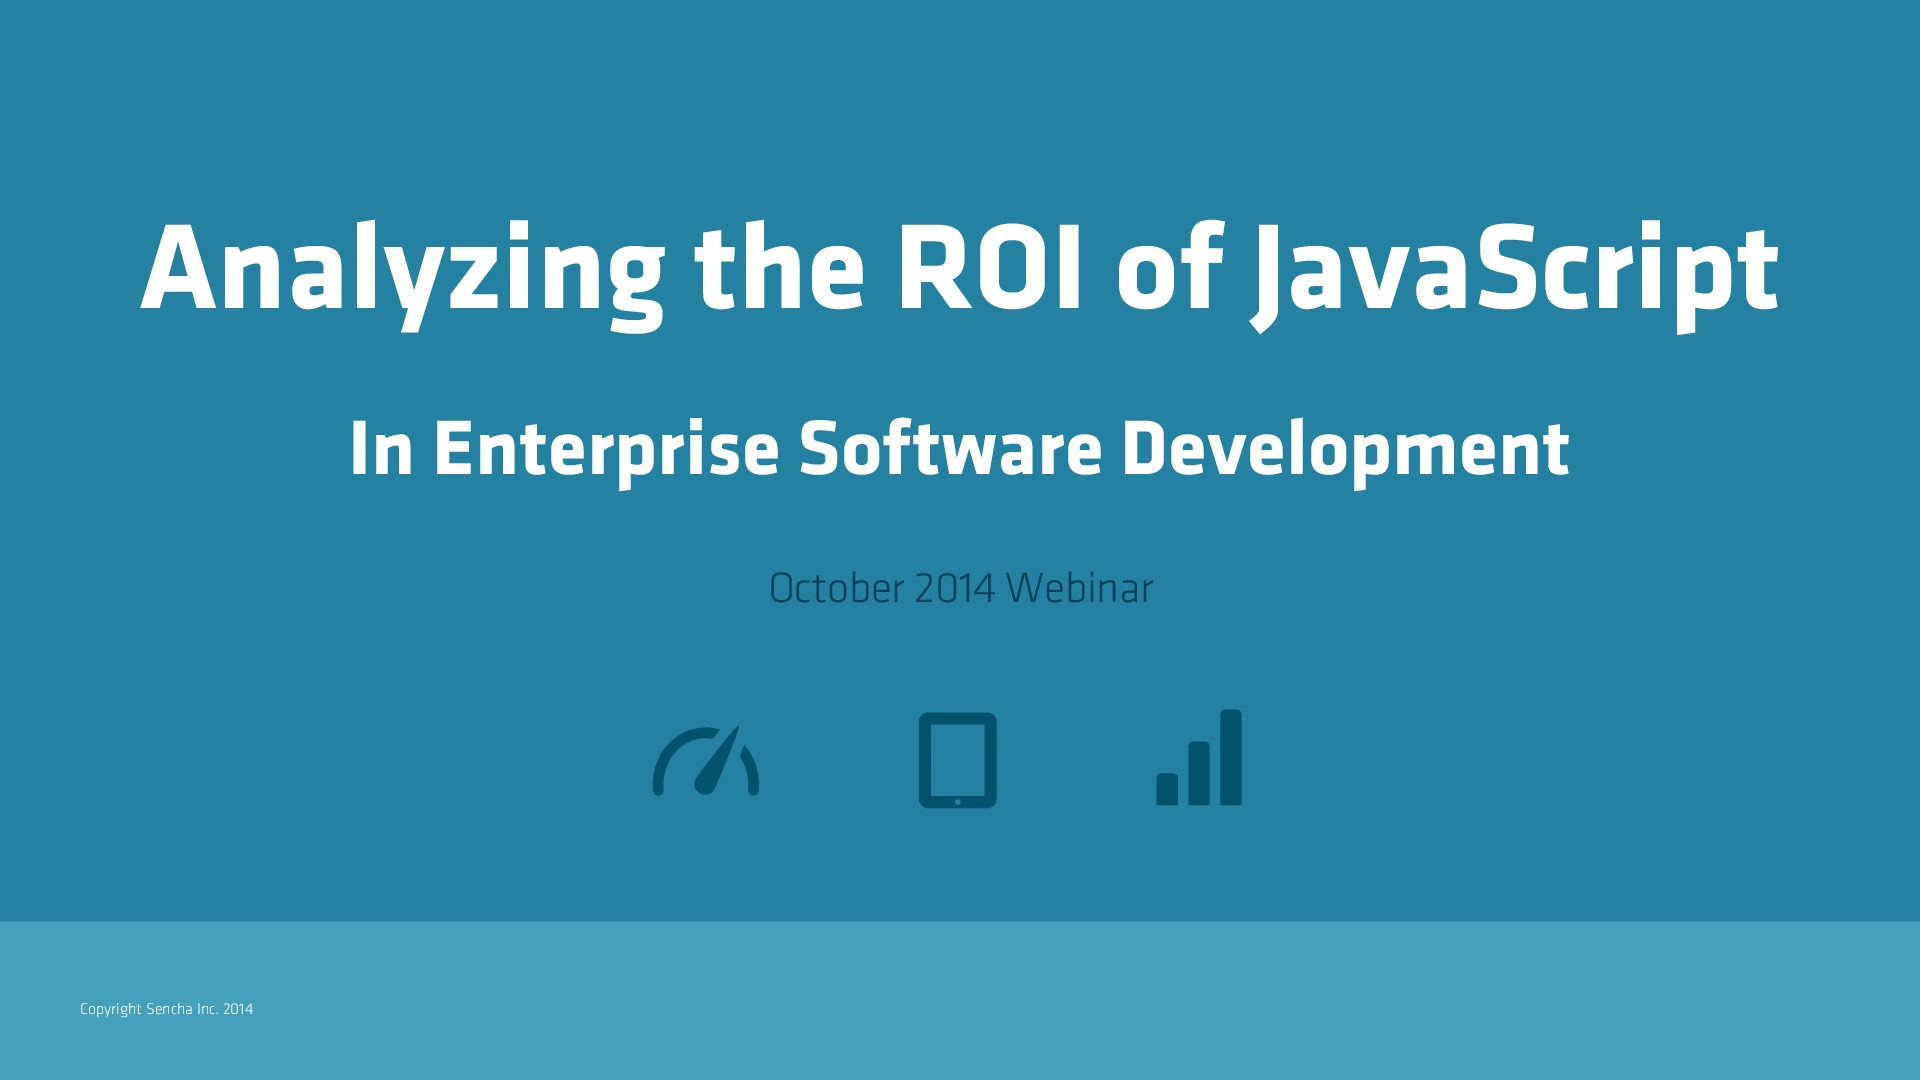 Analyzing the ROI of JavaScript in Enterprise Software Development